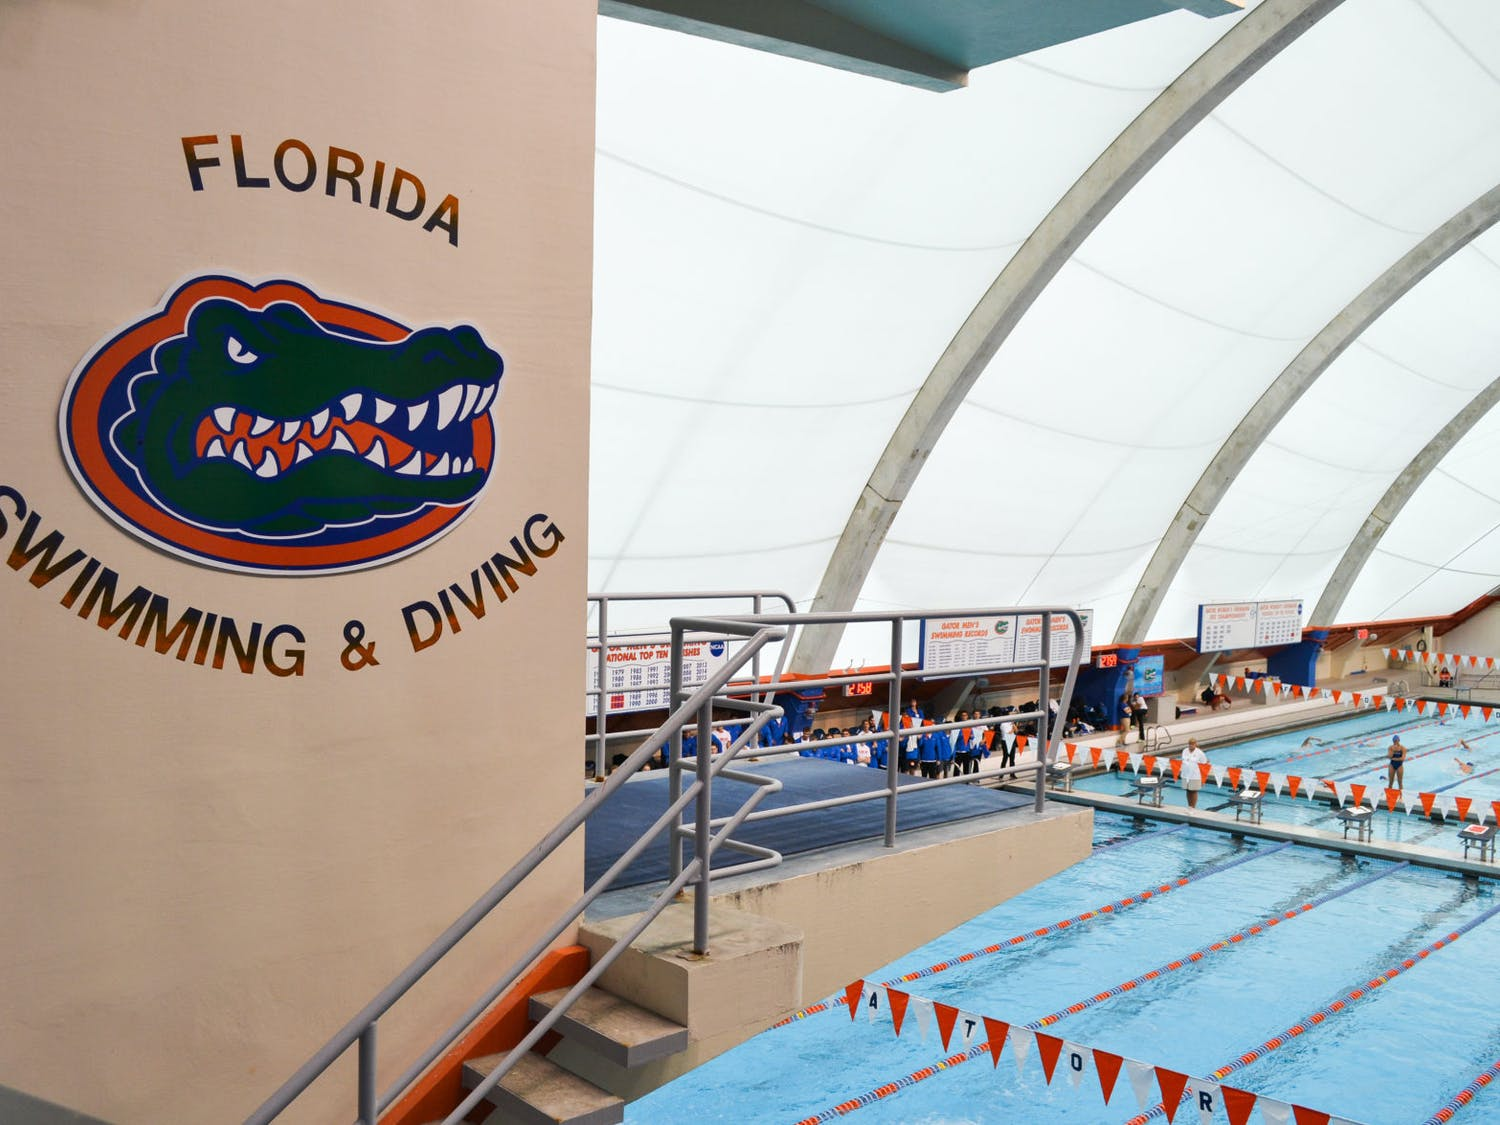 The Florida men's and women's swimming and diving times compete in Austin, Texas, this weekend in an event hosted by the Texas Longhorns. The UF men enter the meet ranked No. 8, while the women have a national rank of No. 19.